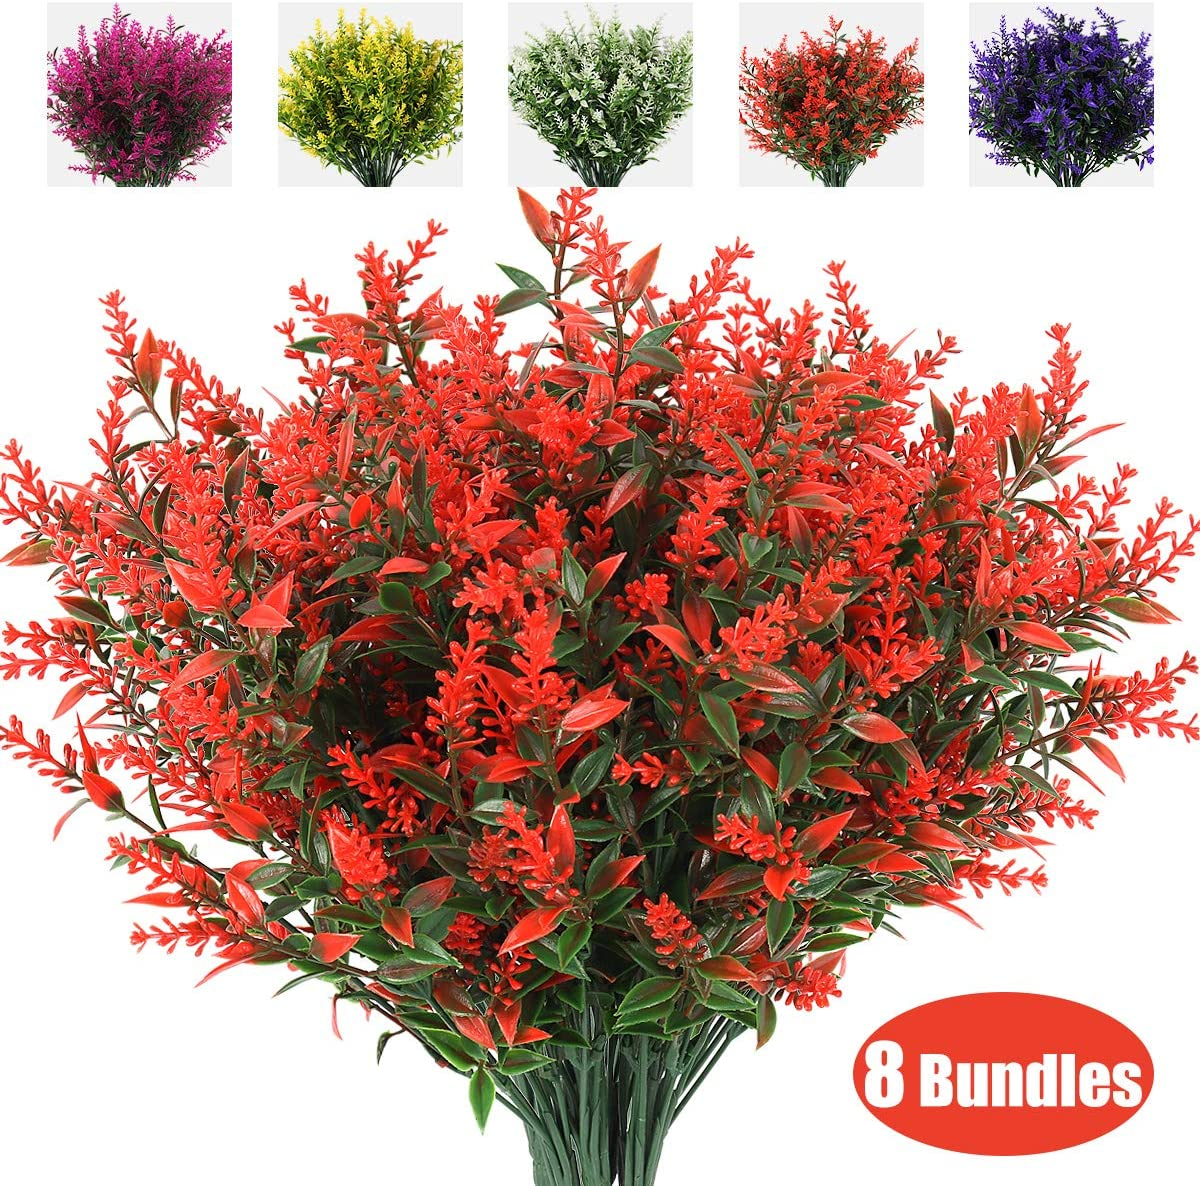 RECUTMS Artificial Lavender Flowers Plants 8 Bundles UV Resistant Faux Outdoor Plastic Greenery Shrubs Plants Hanging Planter Kitchen Home Wedding Office Garden Decor (Orange Red)